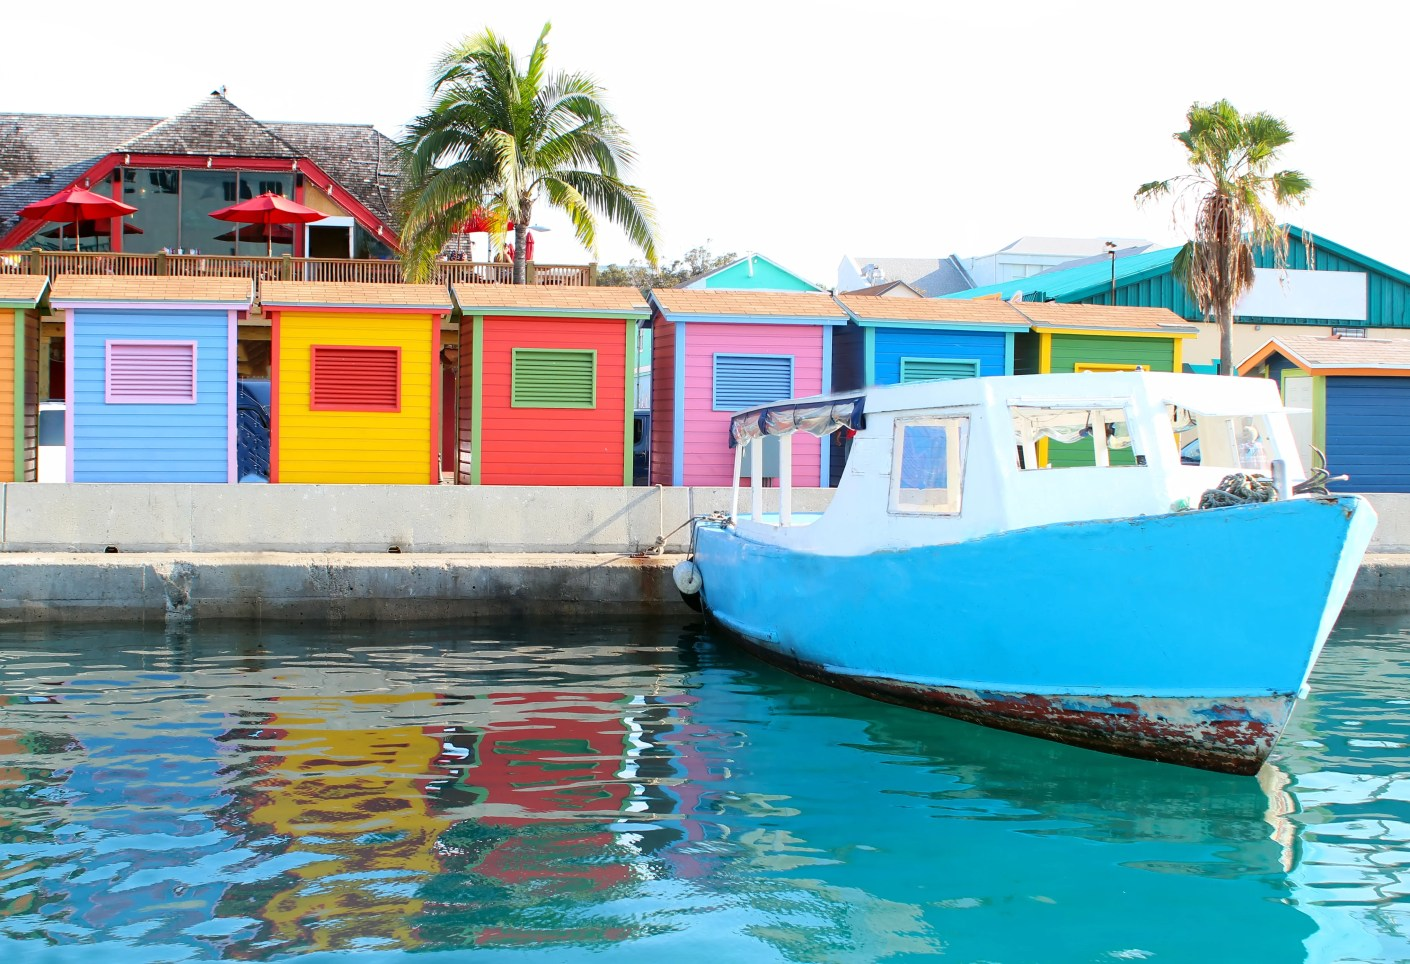 A colorful image of the waterfront area in downtown Nassau showing a water taxi and several huts.